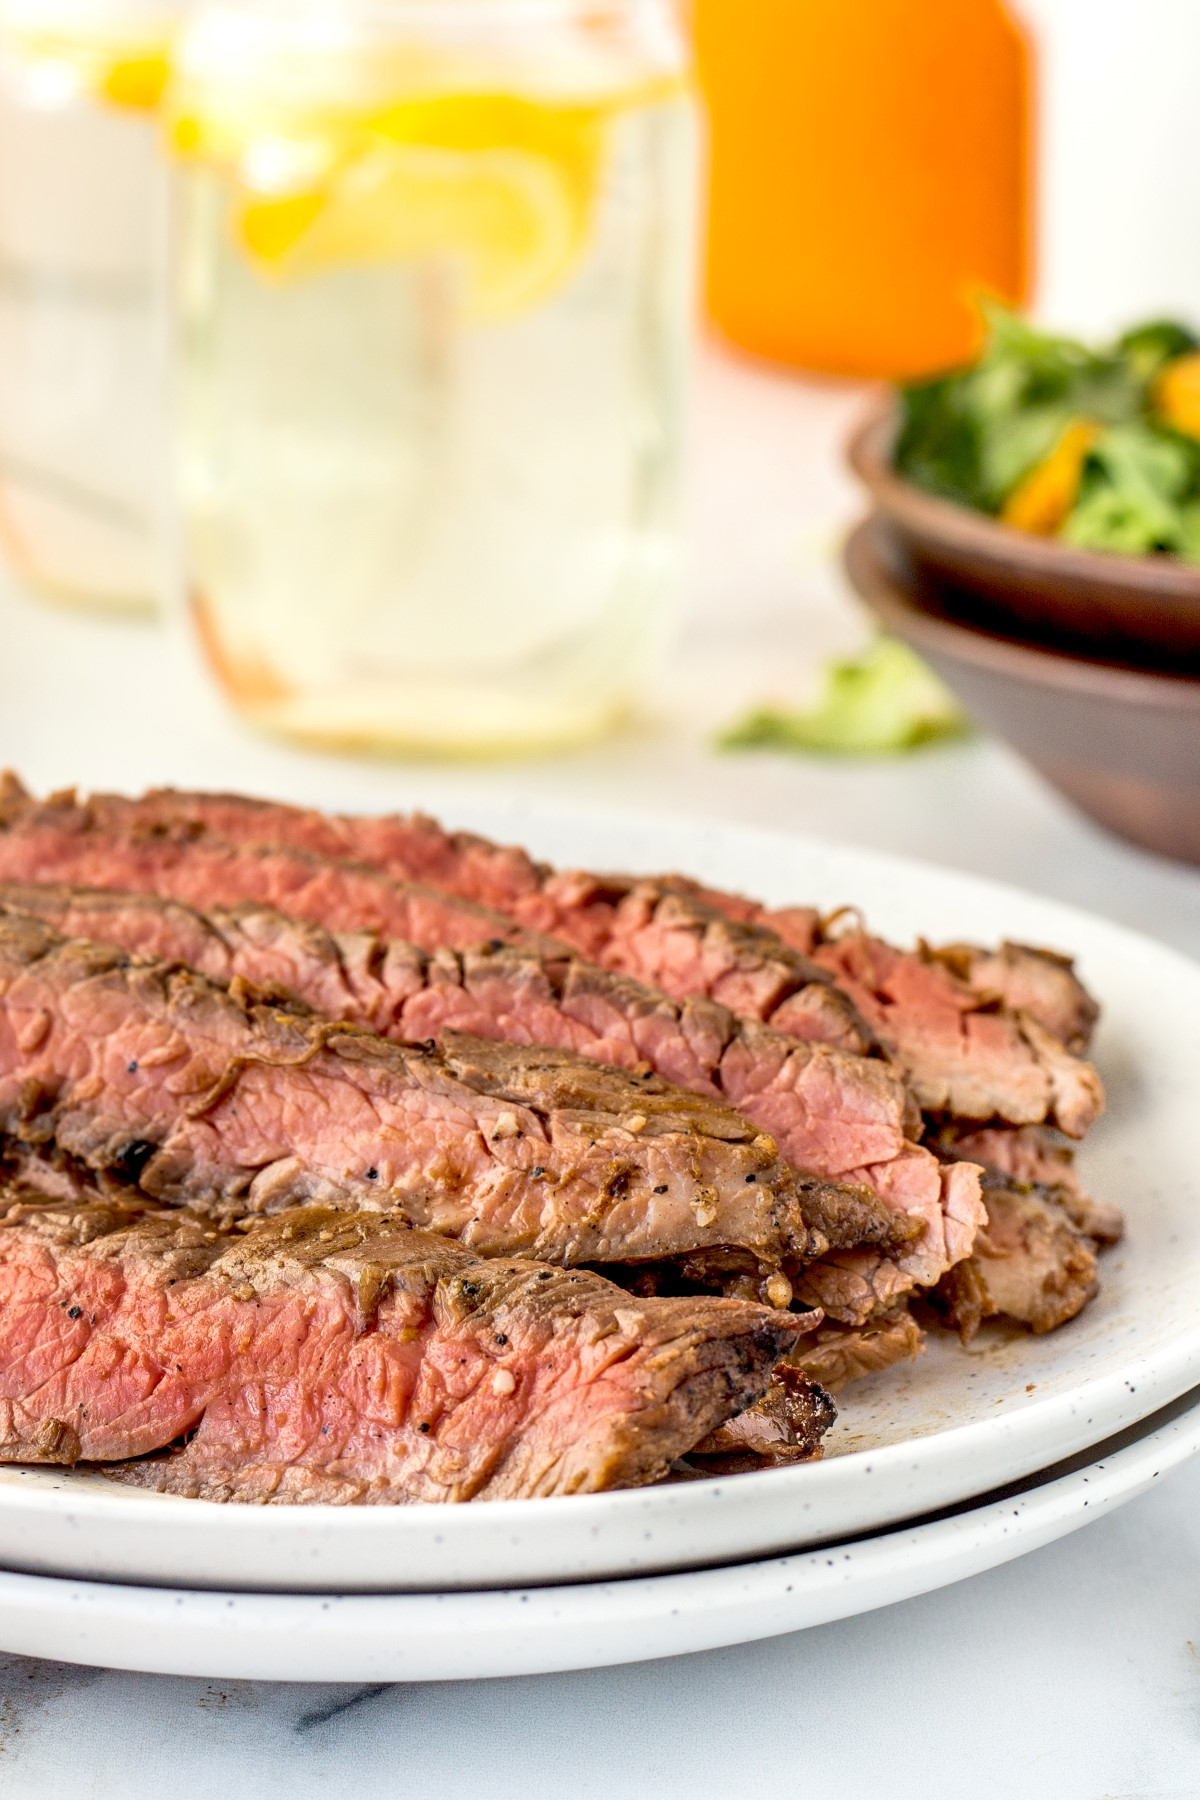 Thinly sliced grilled flank steak on a white plate.